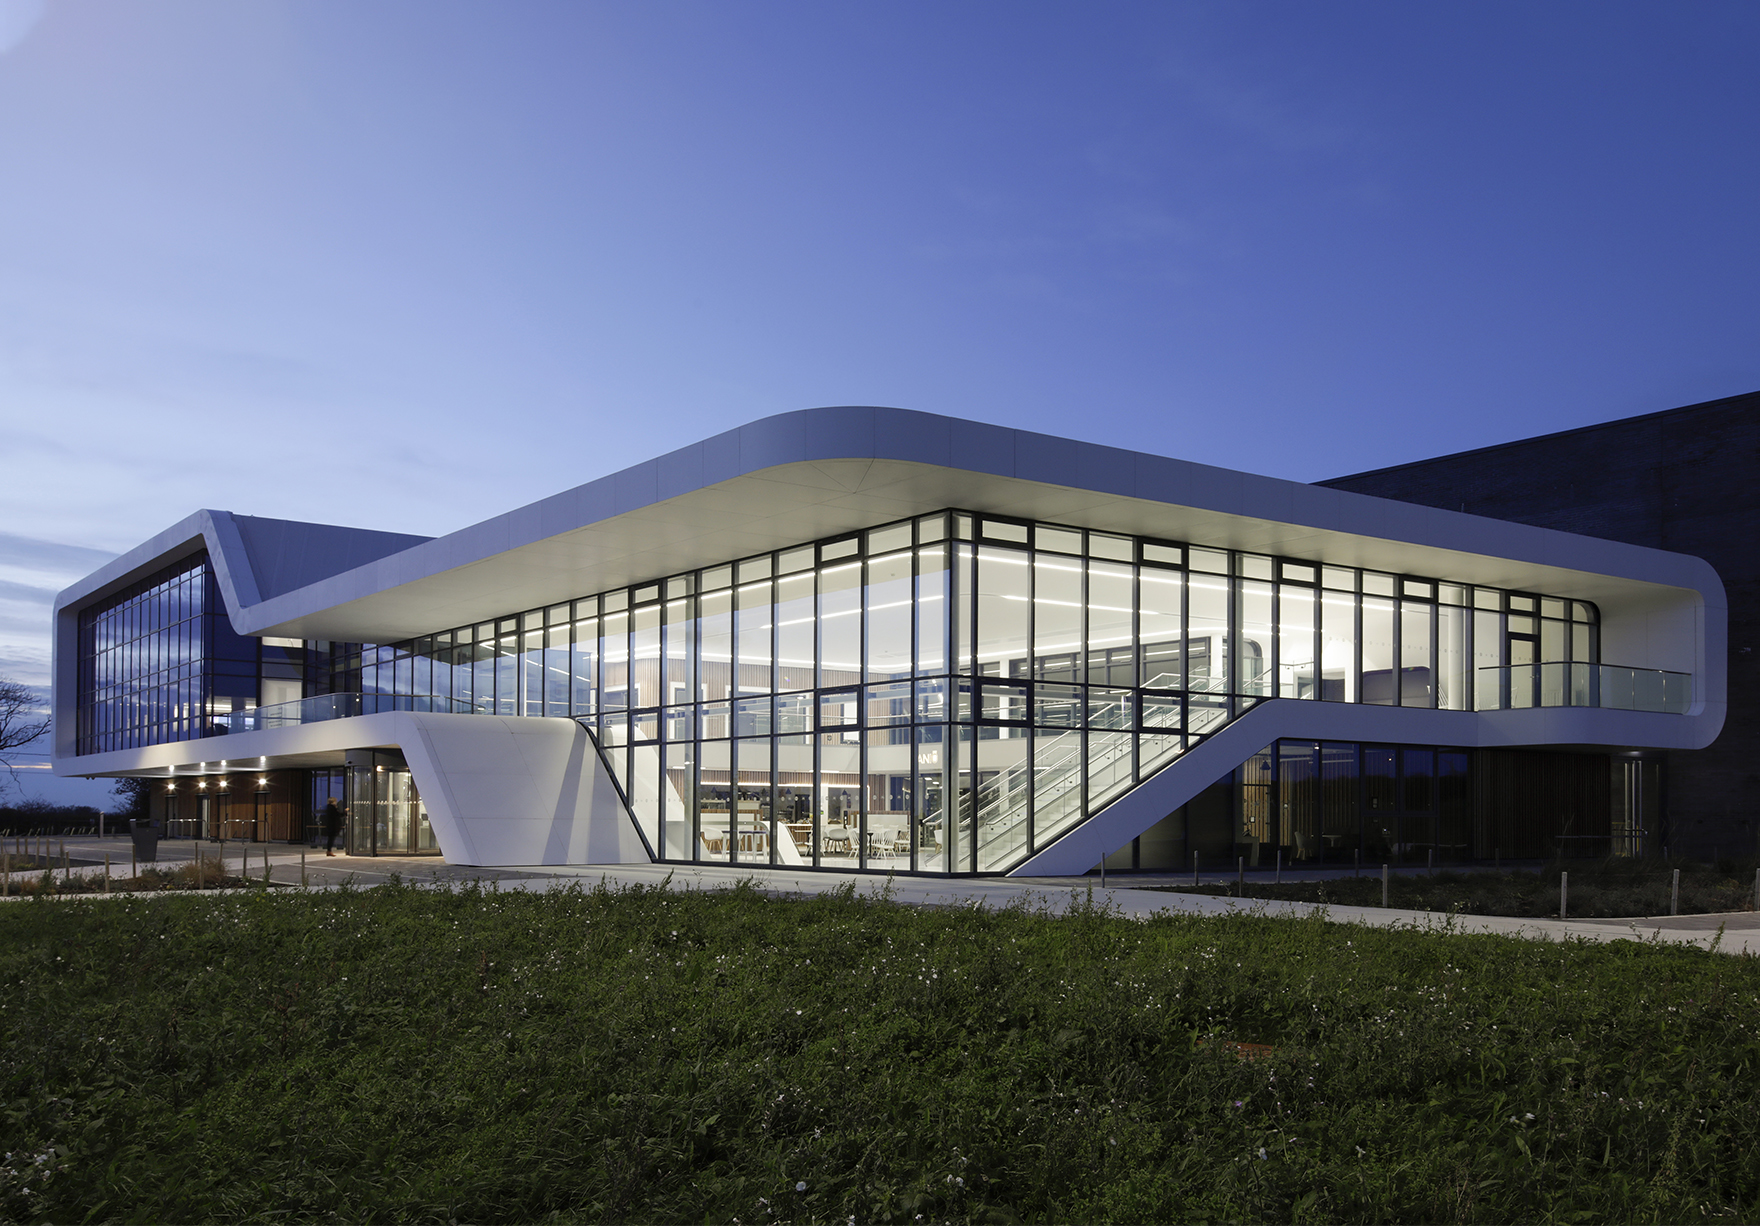 Menai Science Park Anglesey Wales Incubator Labs Offices Open Innovation Space At Night Lh